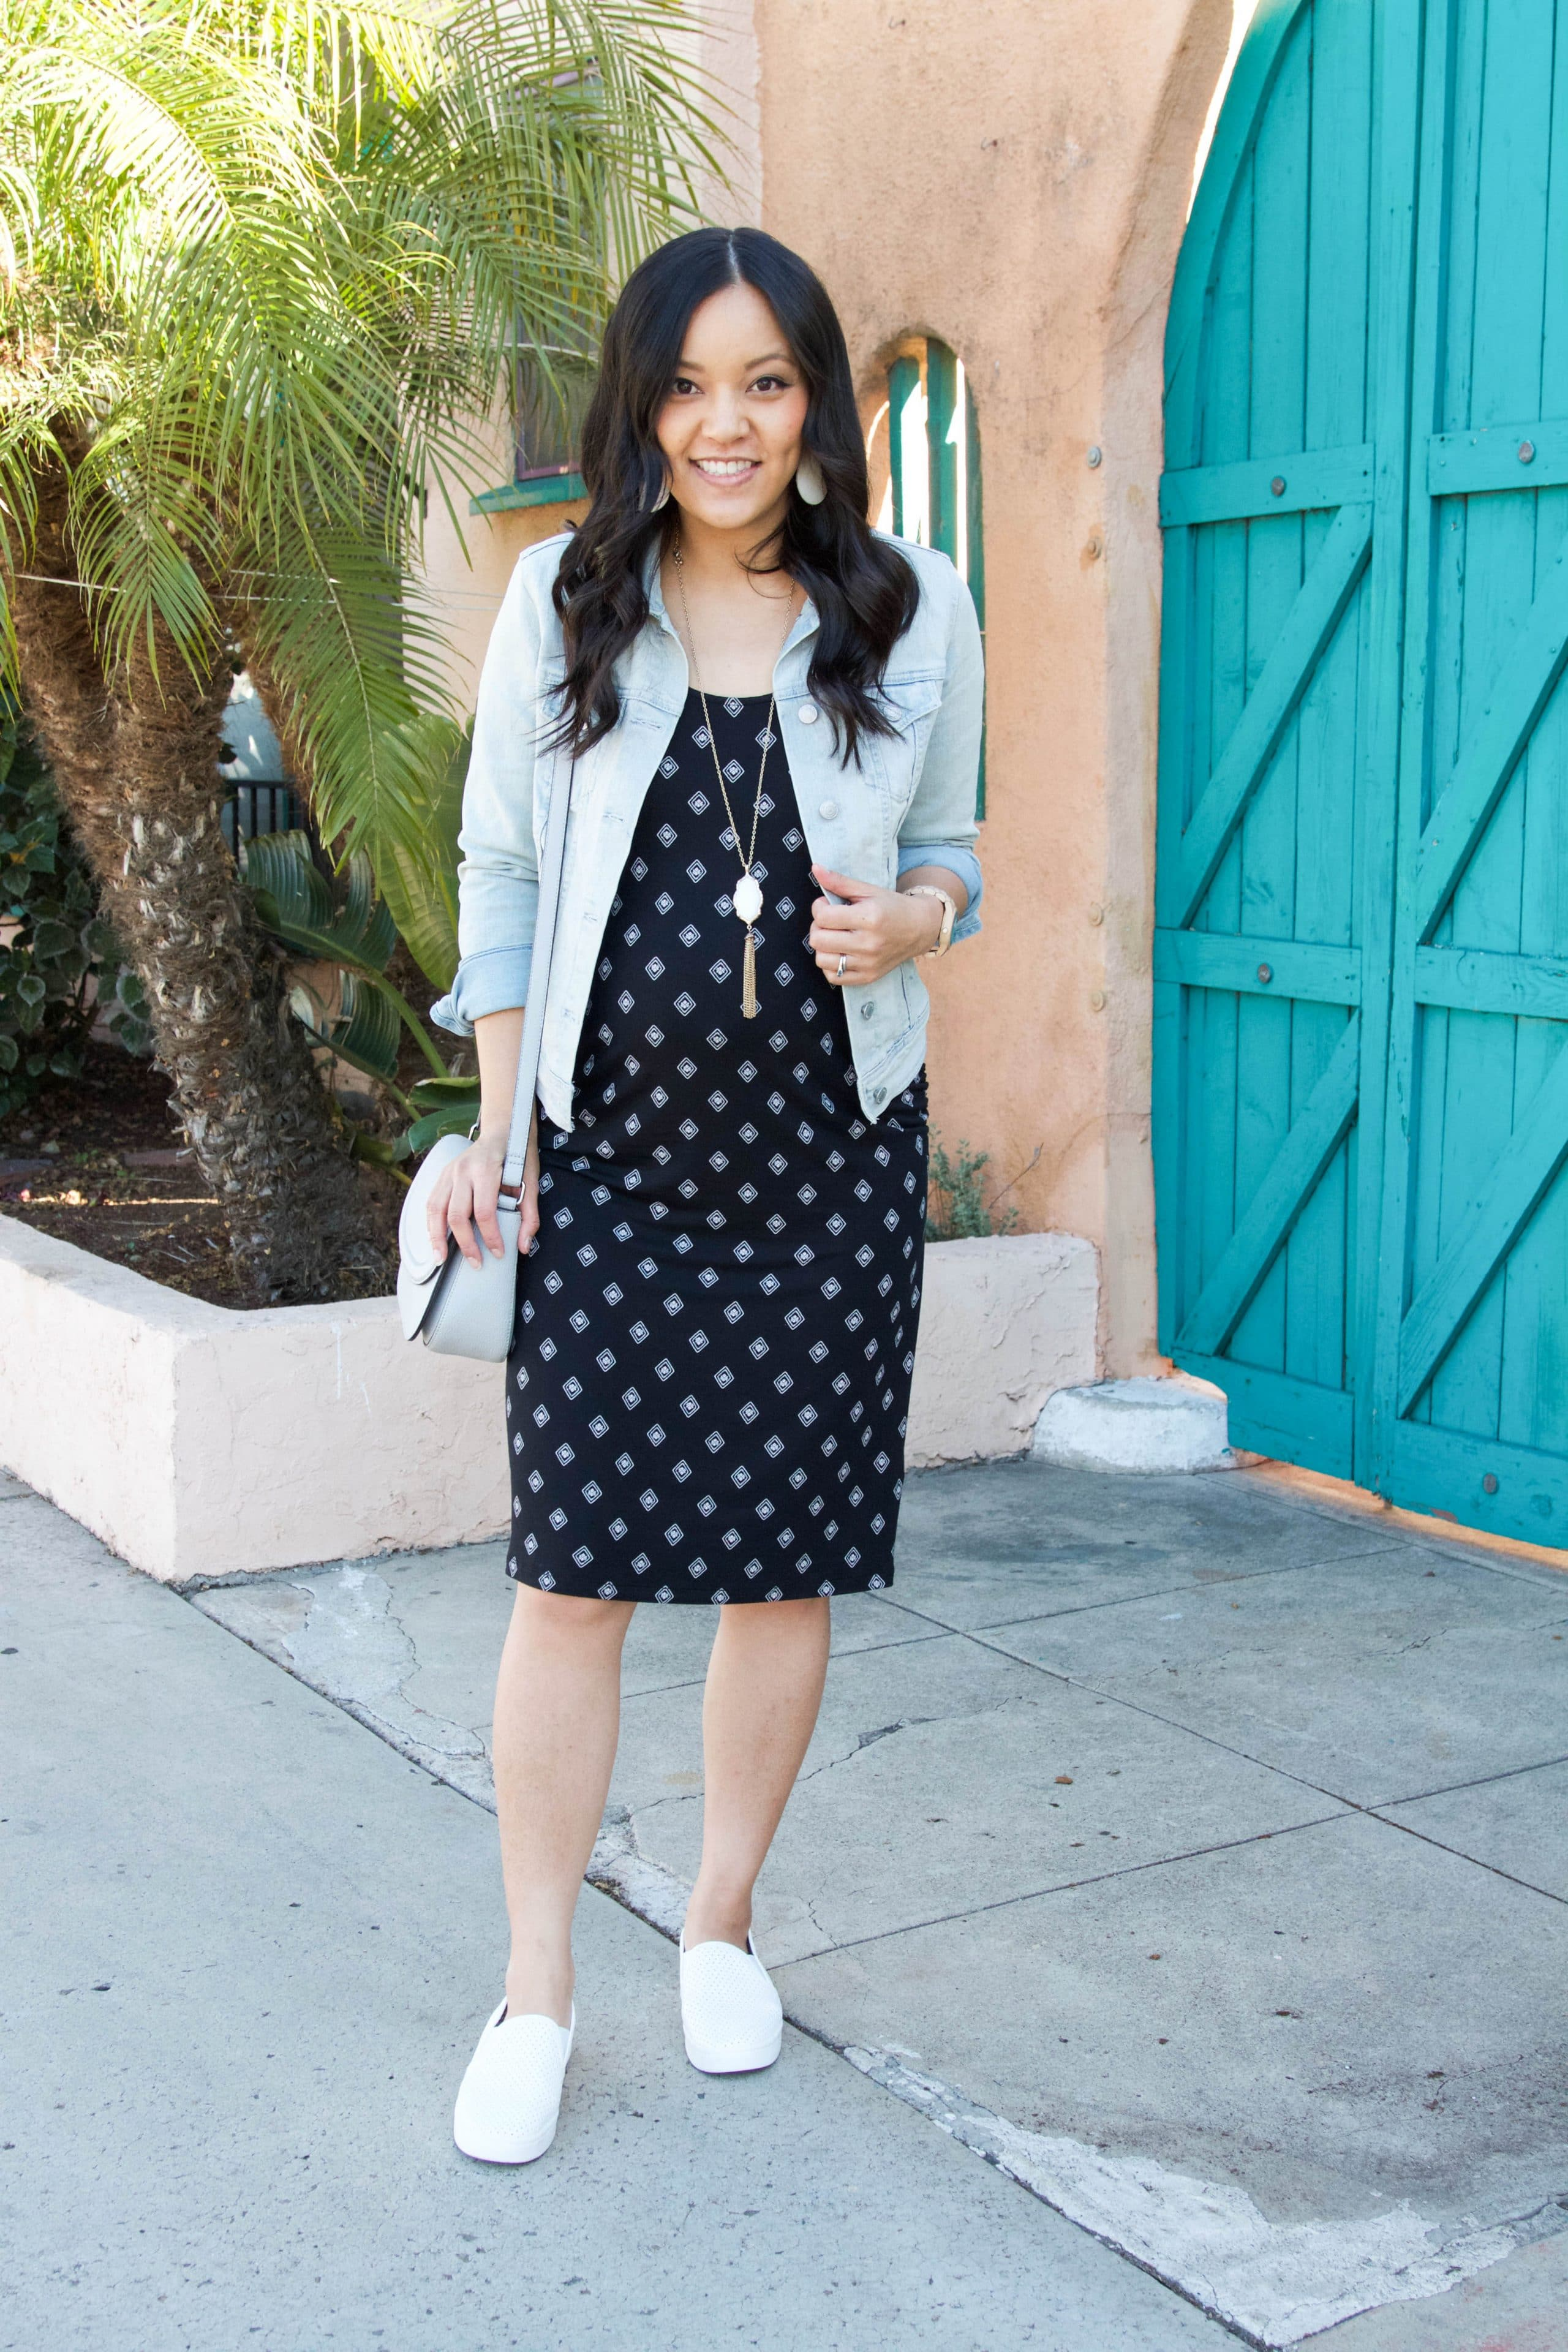 Printed Dress + Jean Jacket + White Slip Ons + Statement Necklace